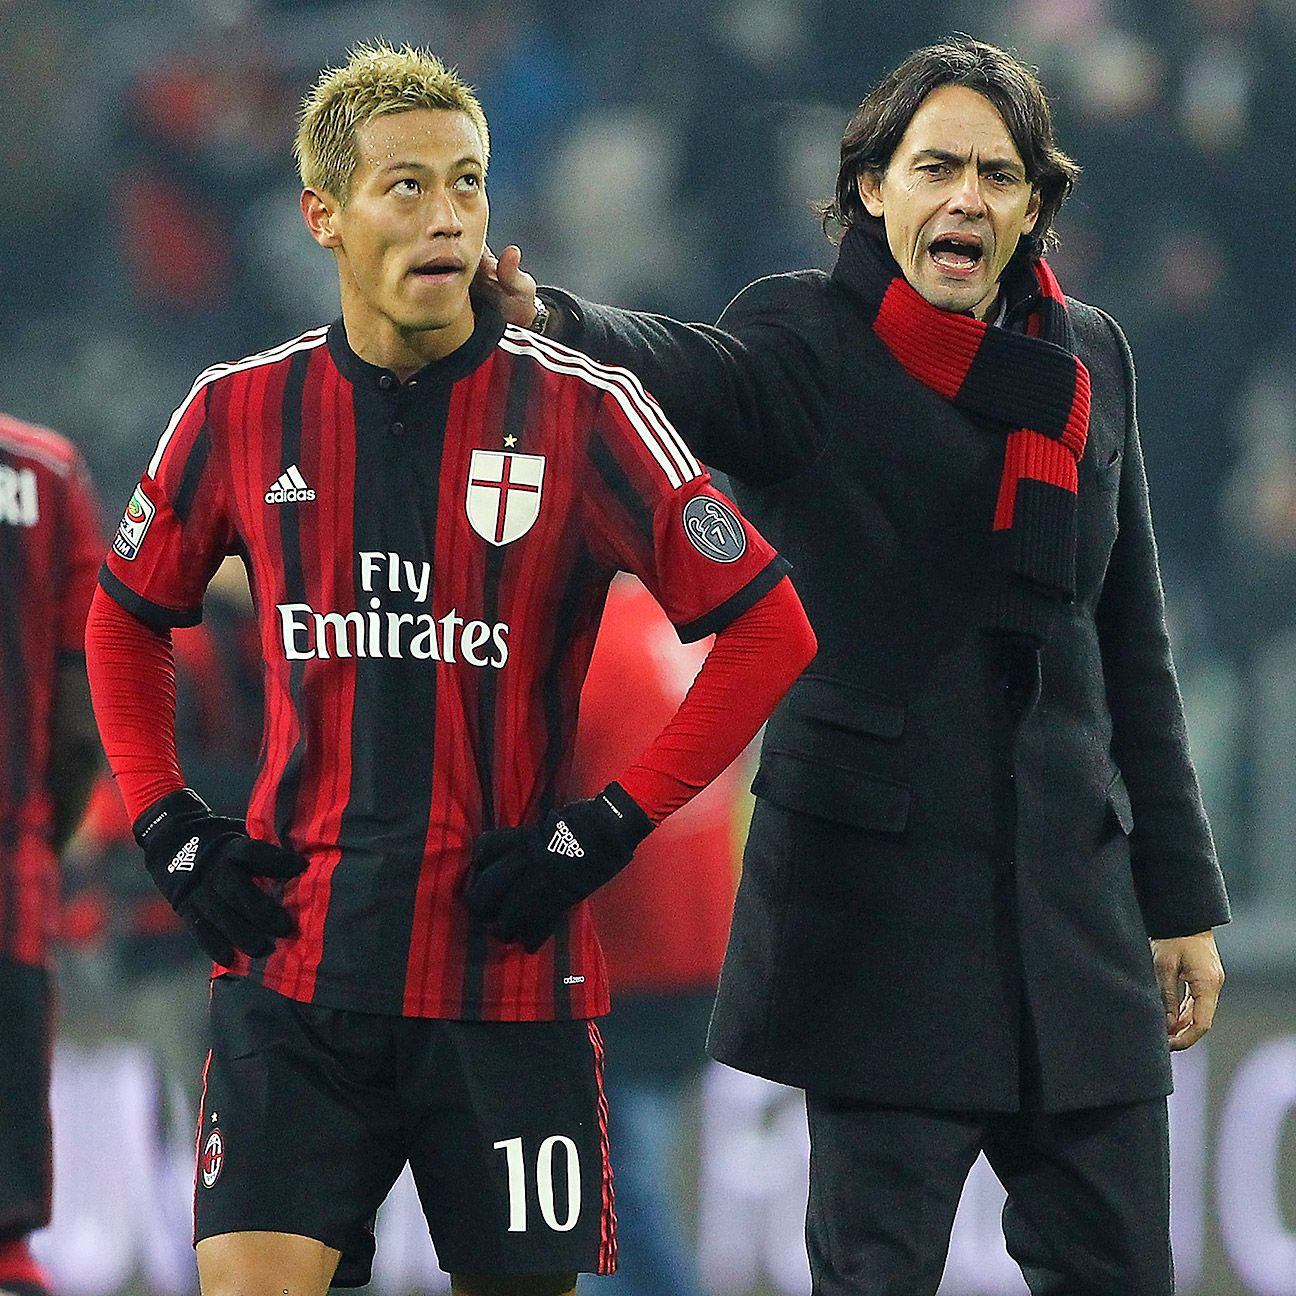 Milan showed some fight at Juventus, but in the end were left with another defeat.